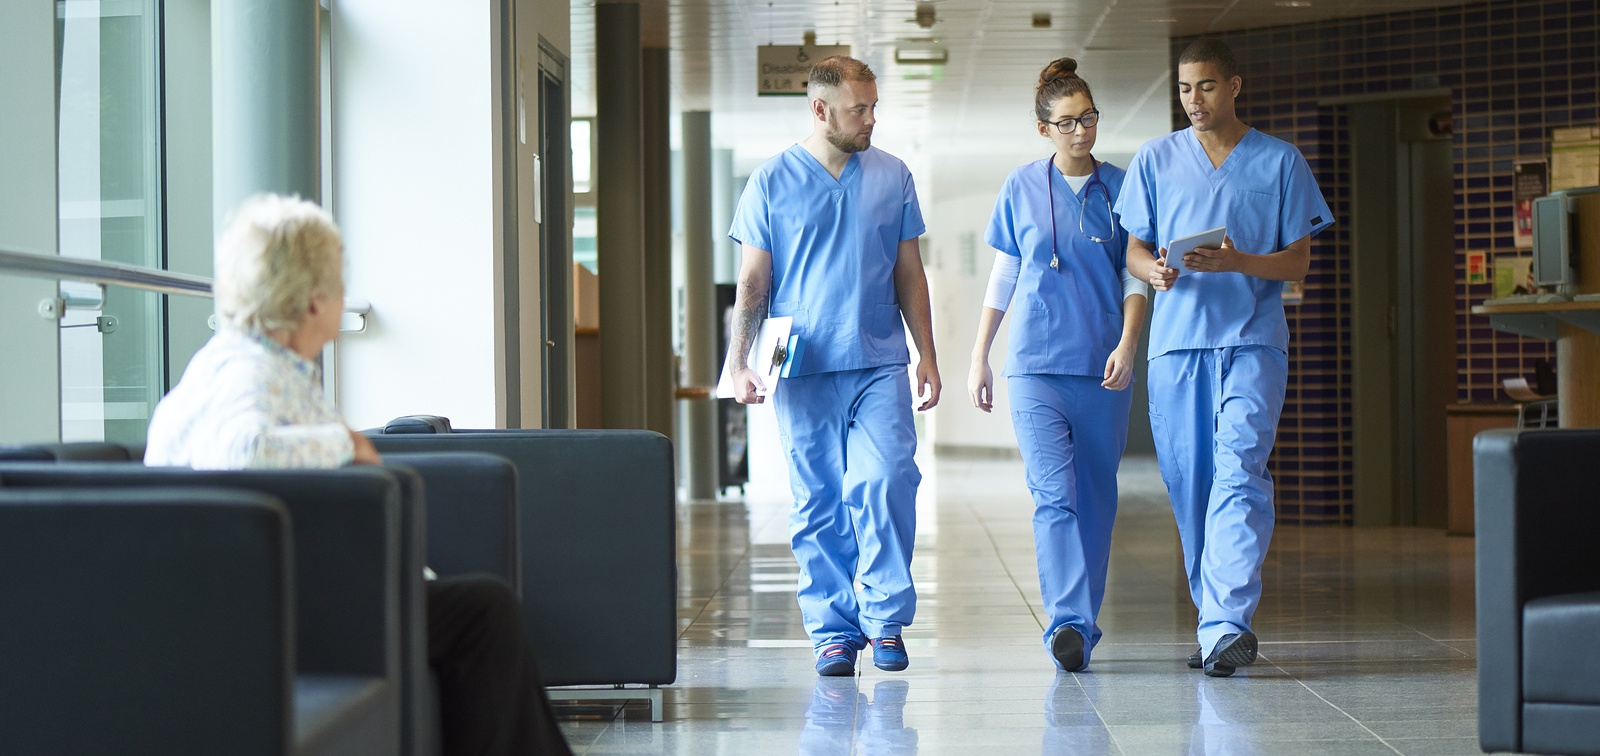 Travel nurse demand outpacing supply, with hospitals paying steep rates